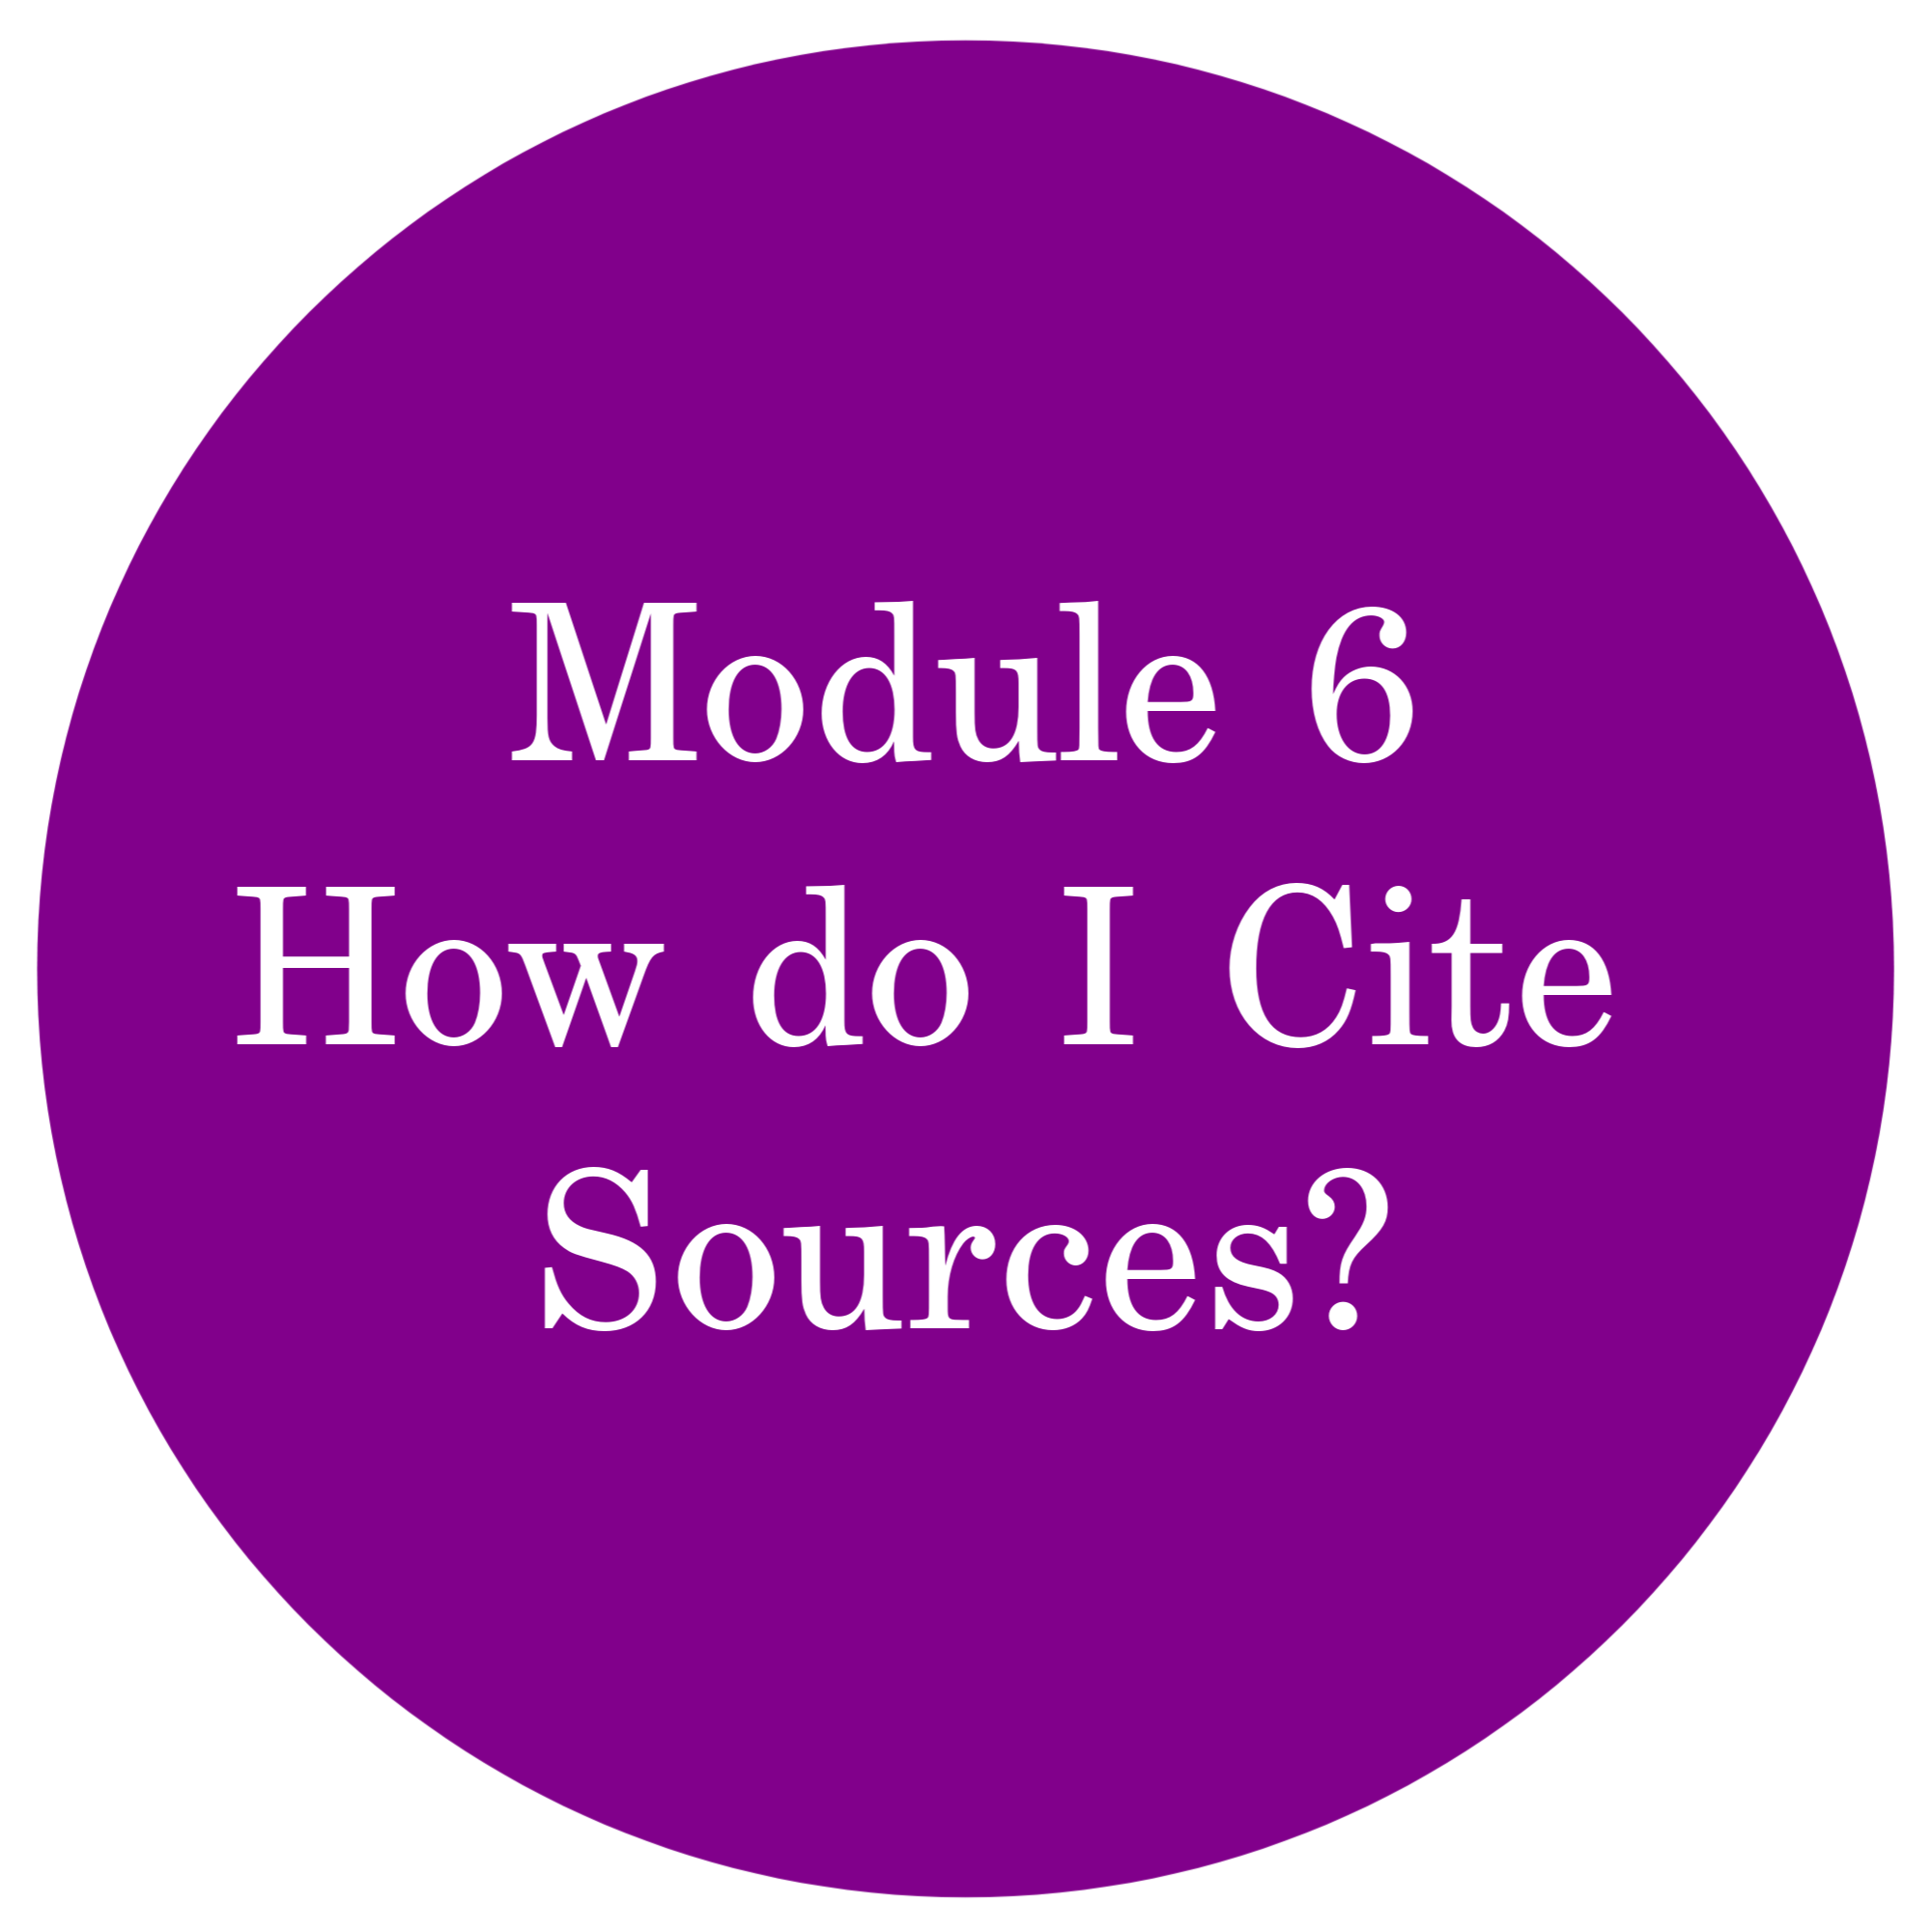 Module 6 How do I Cite Sources?